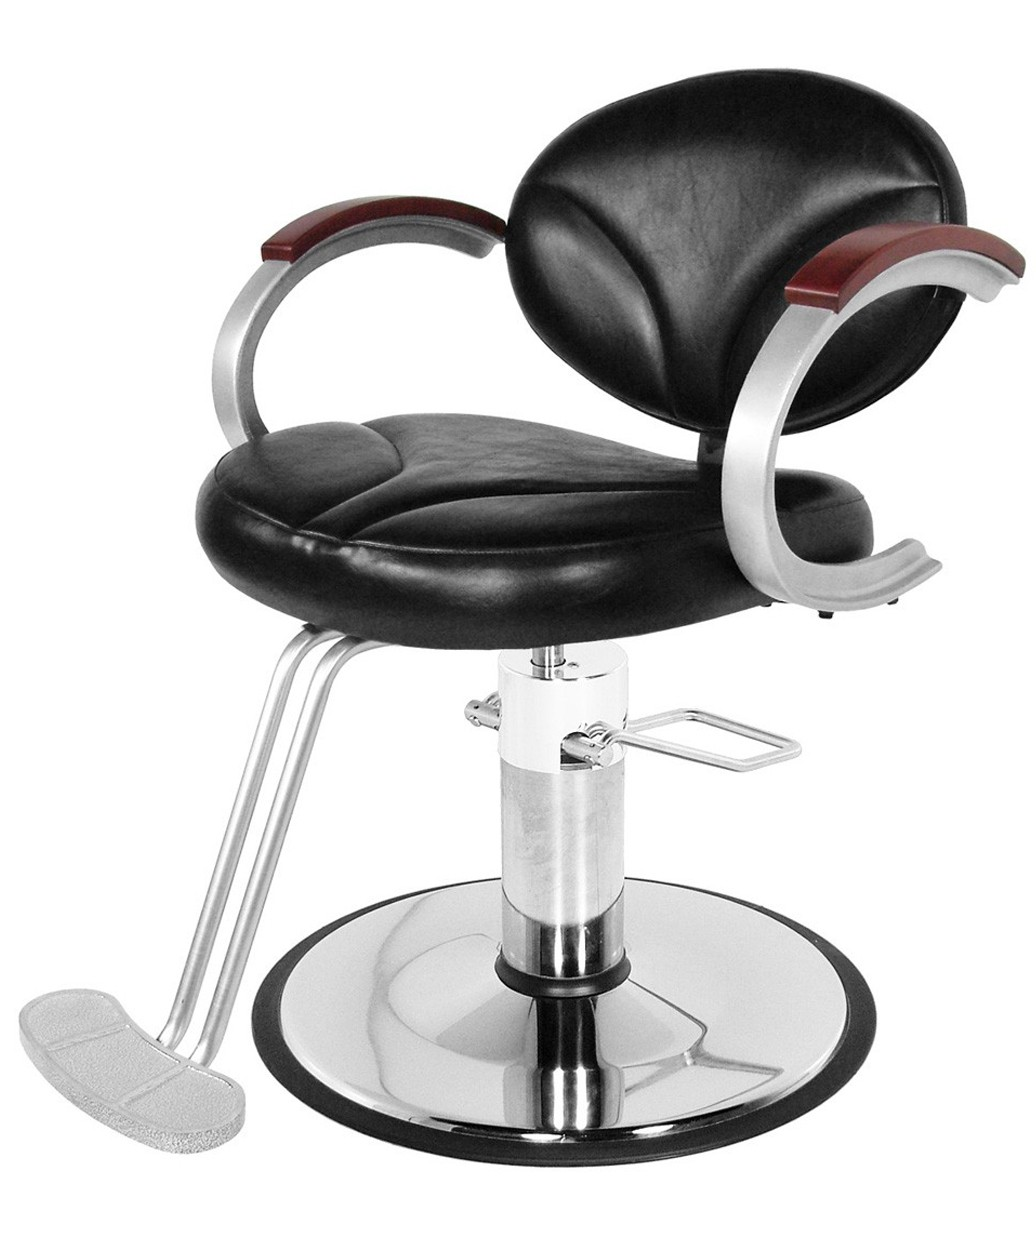 9100 Silhouette Styling Chair with Standard Base